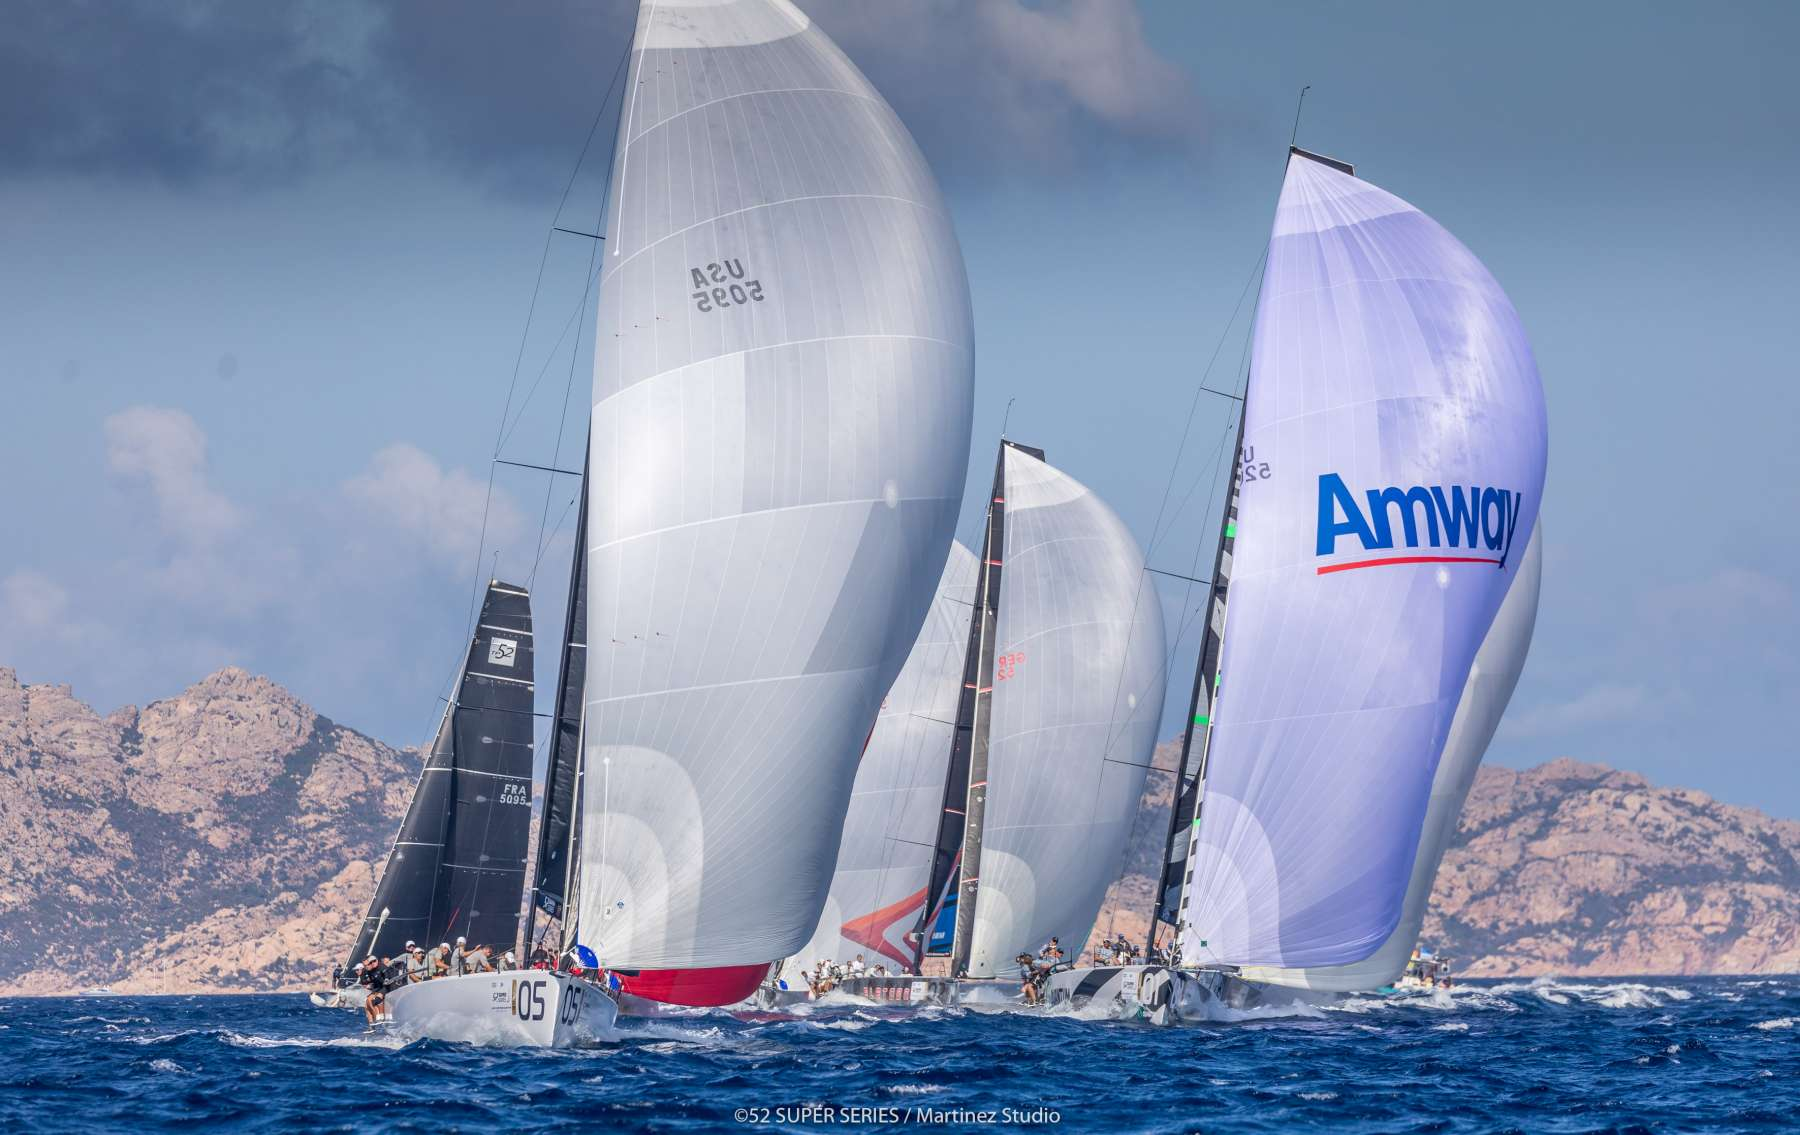 AUDI 52 SUPER SERIES SAILING WEEK - FOTO DAY 5 ONLINE - NEWS - Yacht Club Costa Smeralda